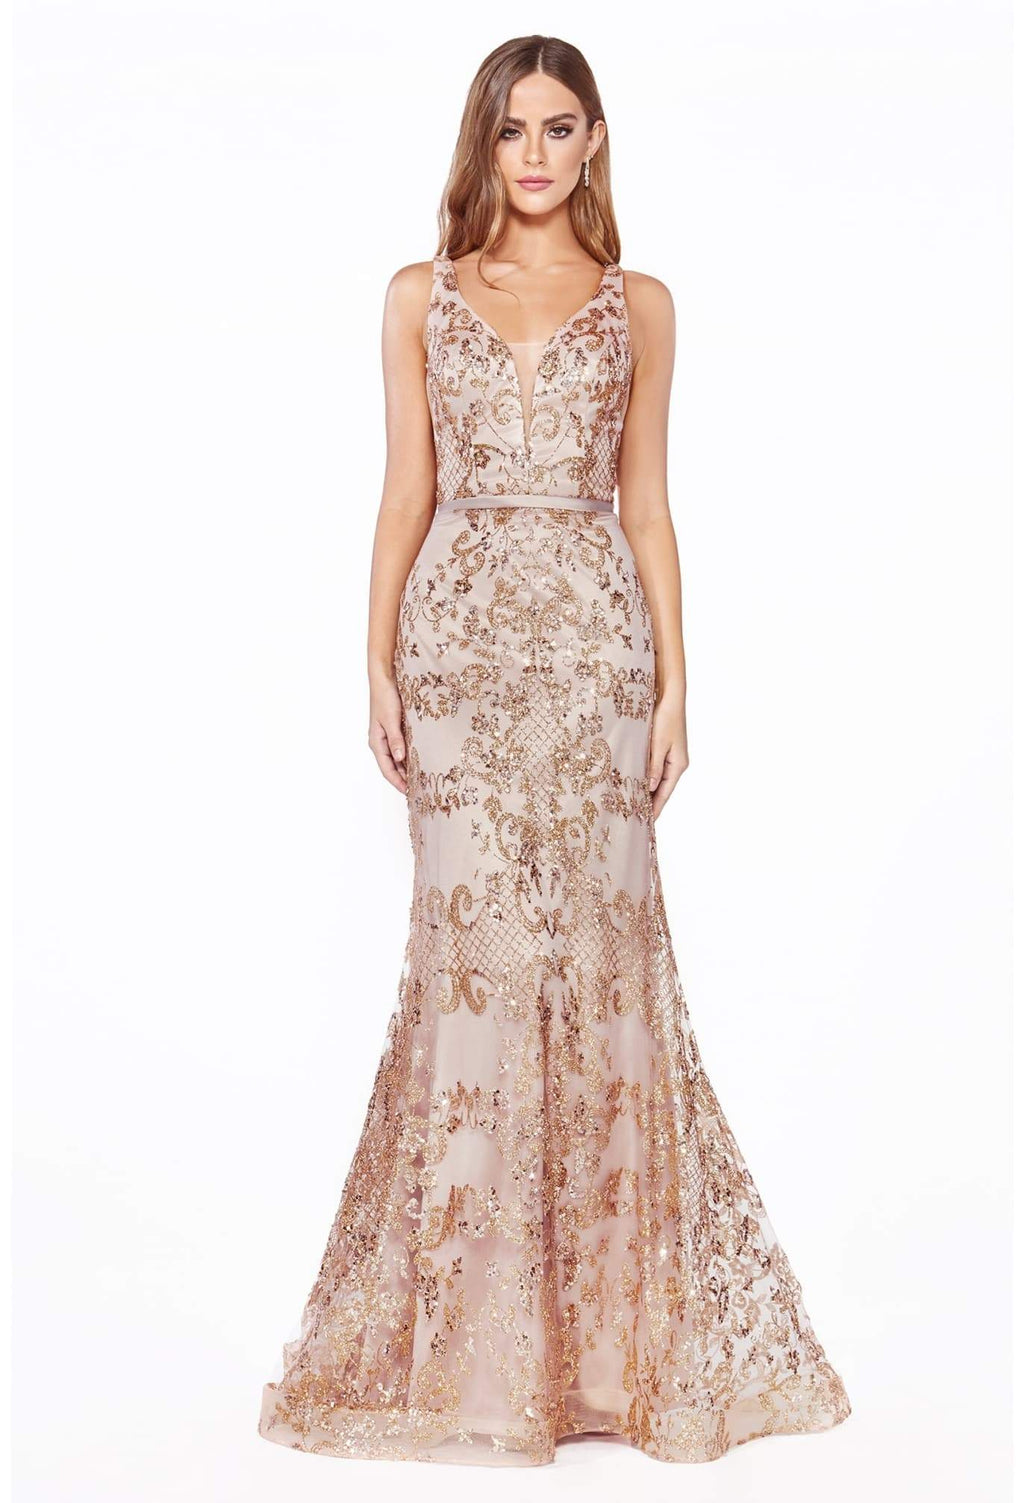 Fitted dress with glitter print details and deep plunging neckline - KC Haute Couture Wedding Dress